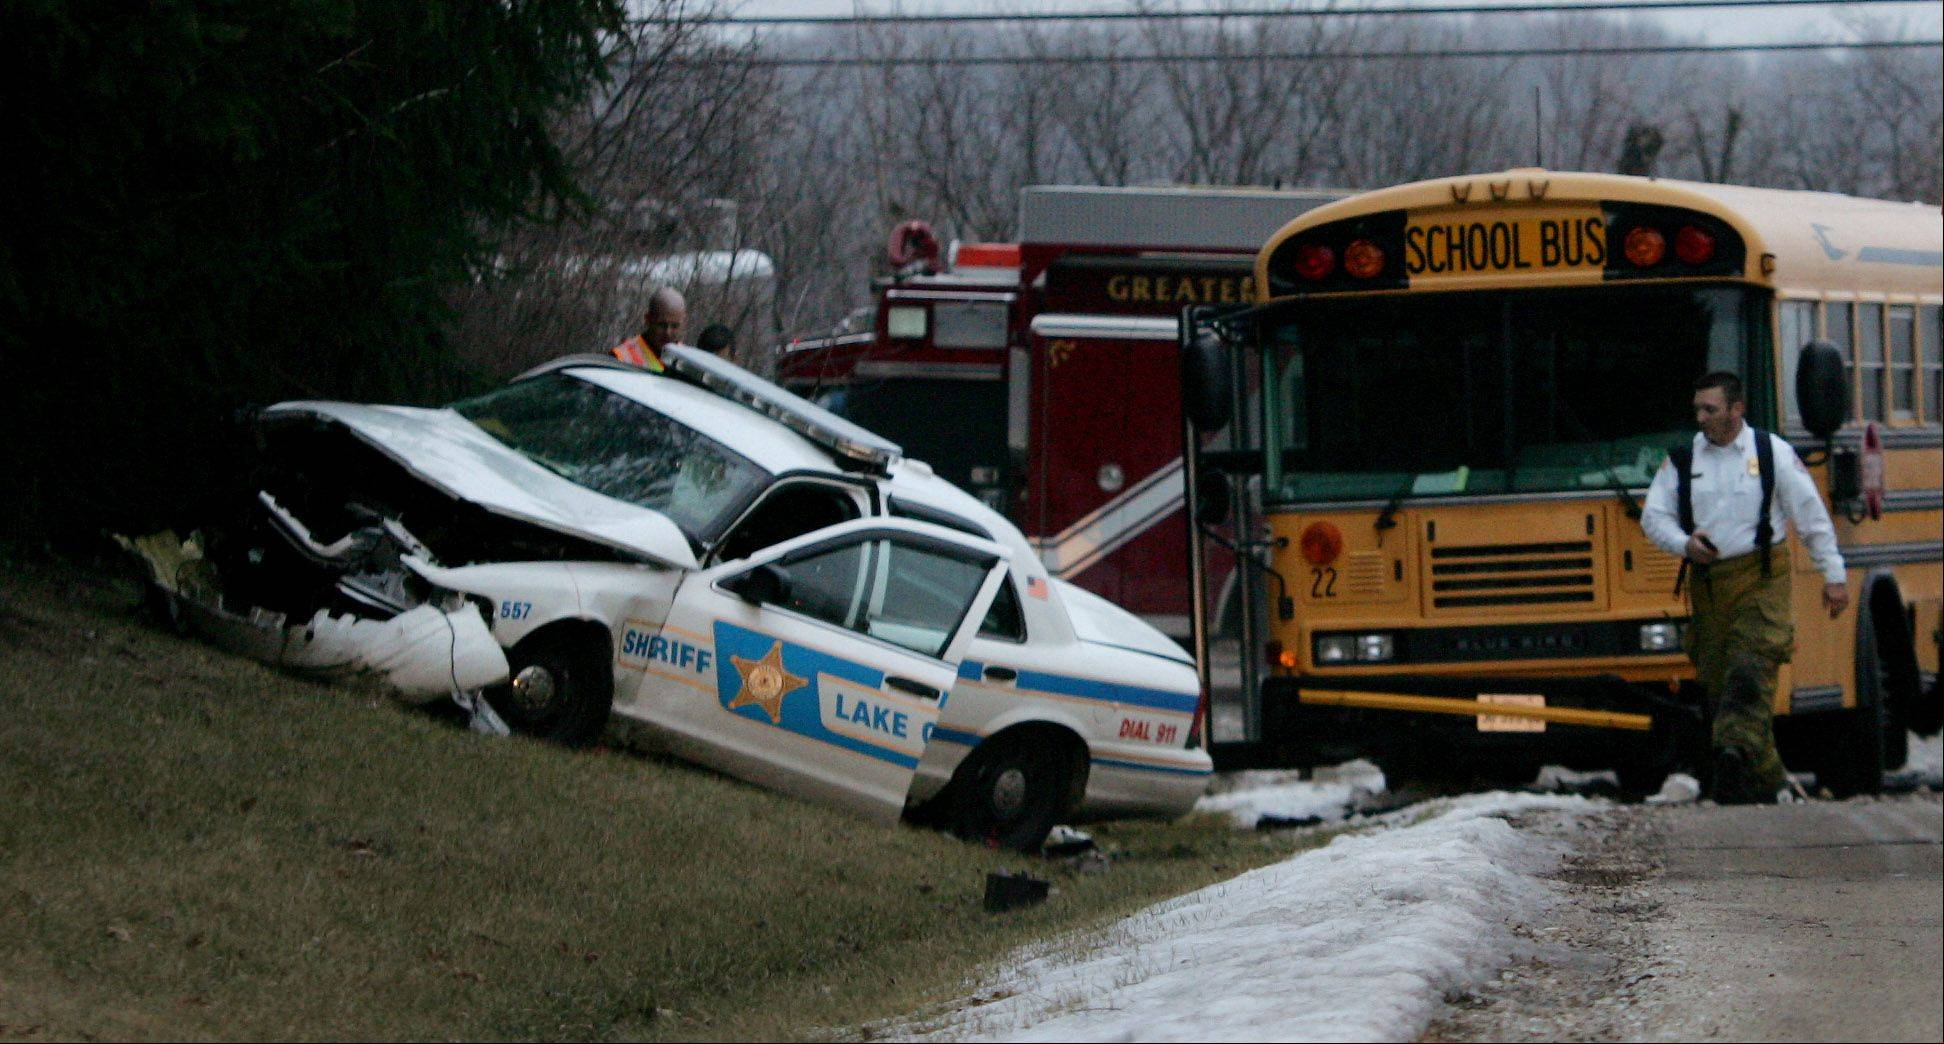 A Lake County sheriff's office car was involved in an accident with a Fremont Elementary District 79 school bus filled with children Thursday on Route 60 and Black Hawk Trail in Fremont Township. A Lake County sheriff's deputy and two students were taken to Advocate Condell Medical Center in Libertyville with nonlife-threatening injuries.